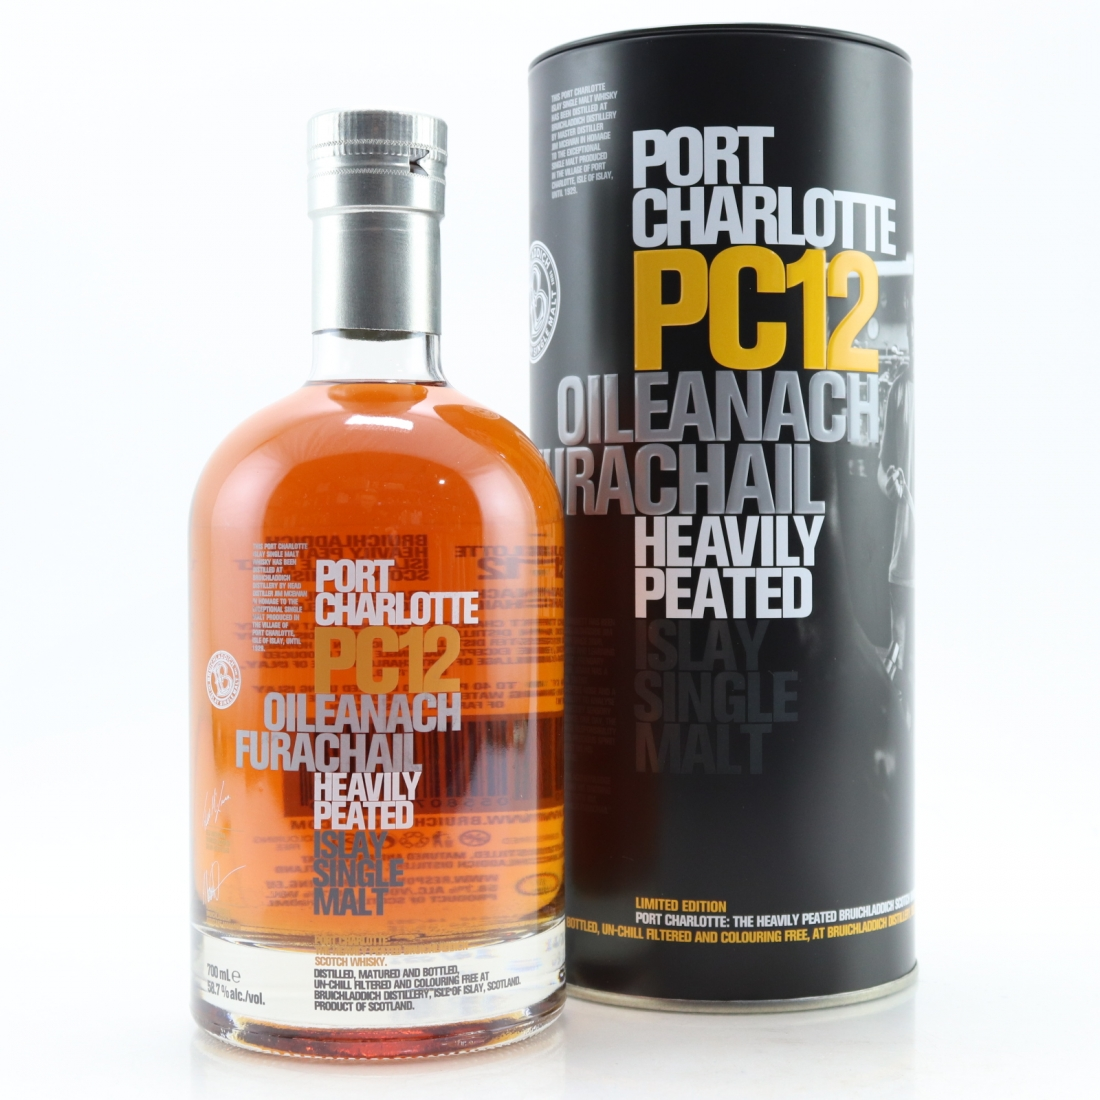 Port Charlotte PC12 / Travel Retail Exclusive